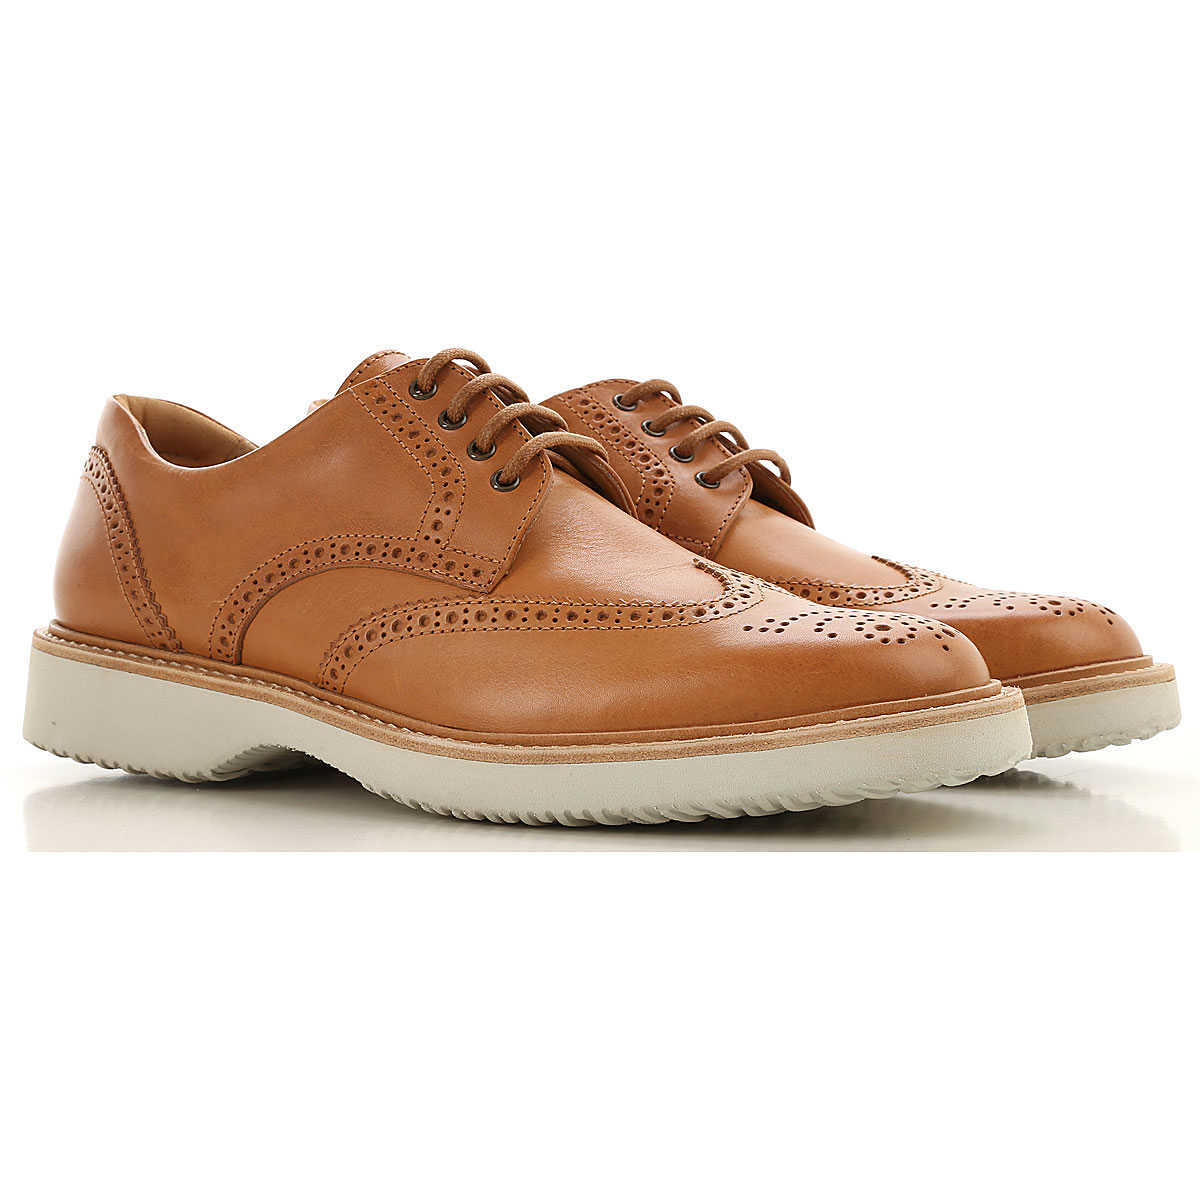 Hogan Lace Up Shoes for Men Oxfords 6.5 7.5 9.5 Derbies and Brogues On Sale UK - GOOFASH